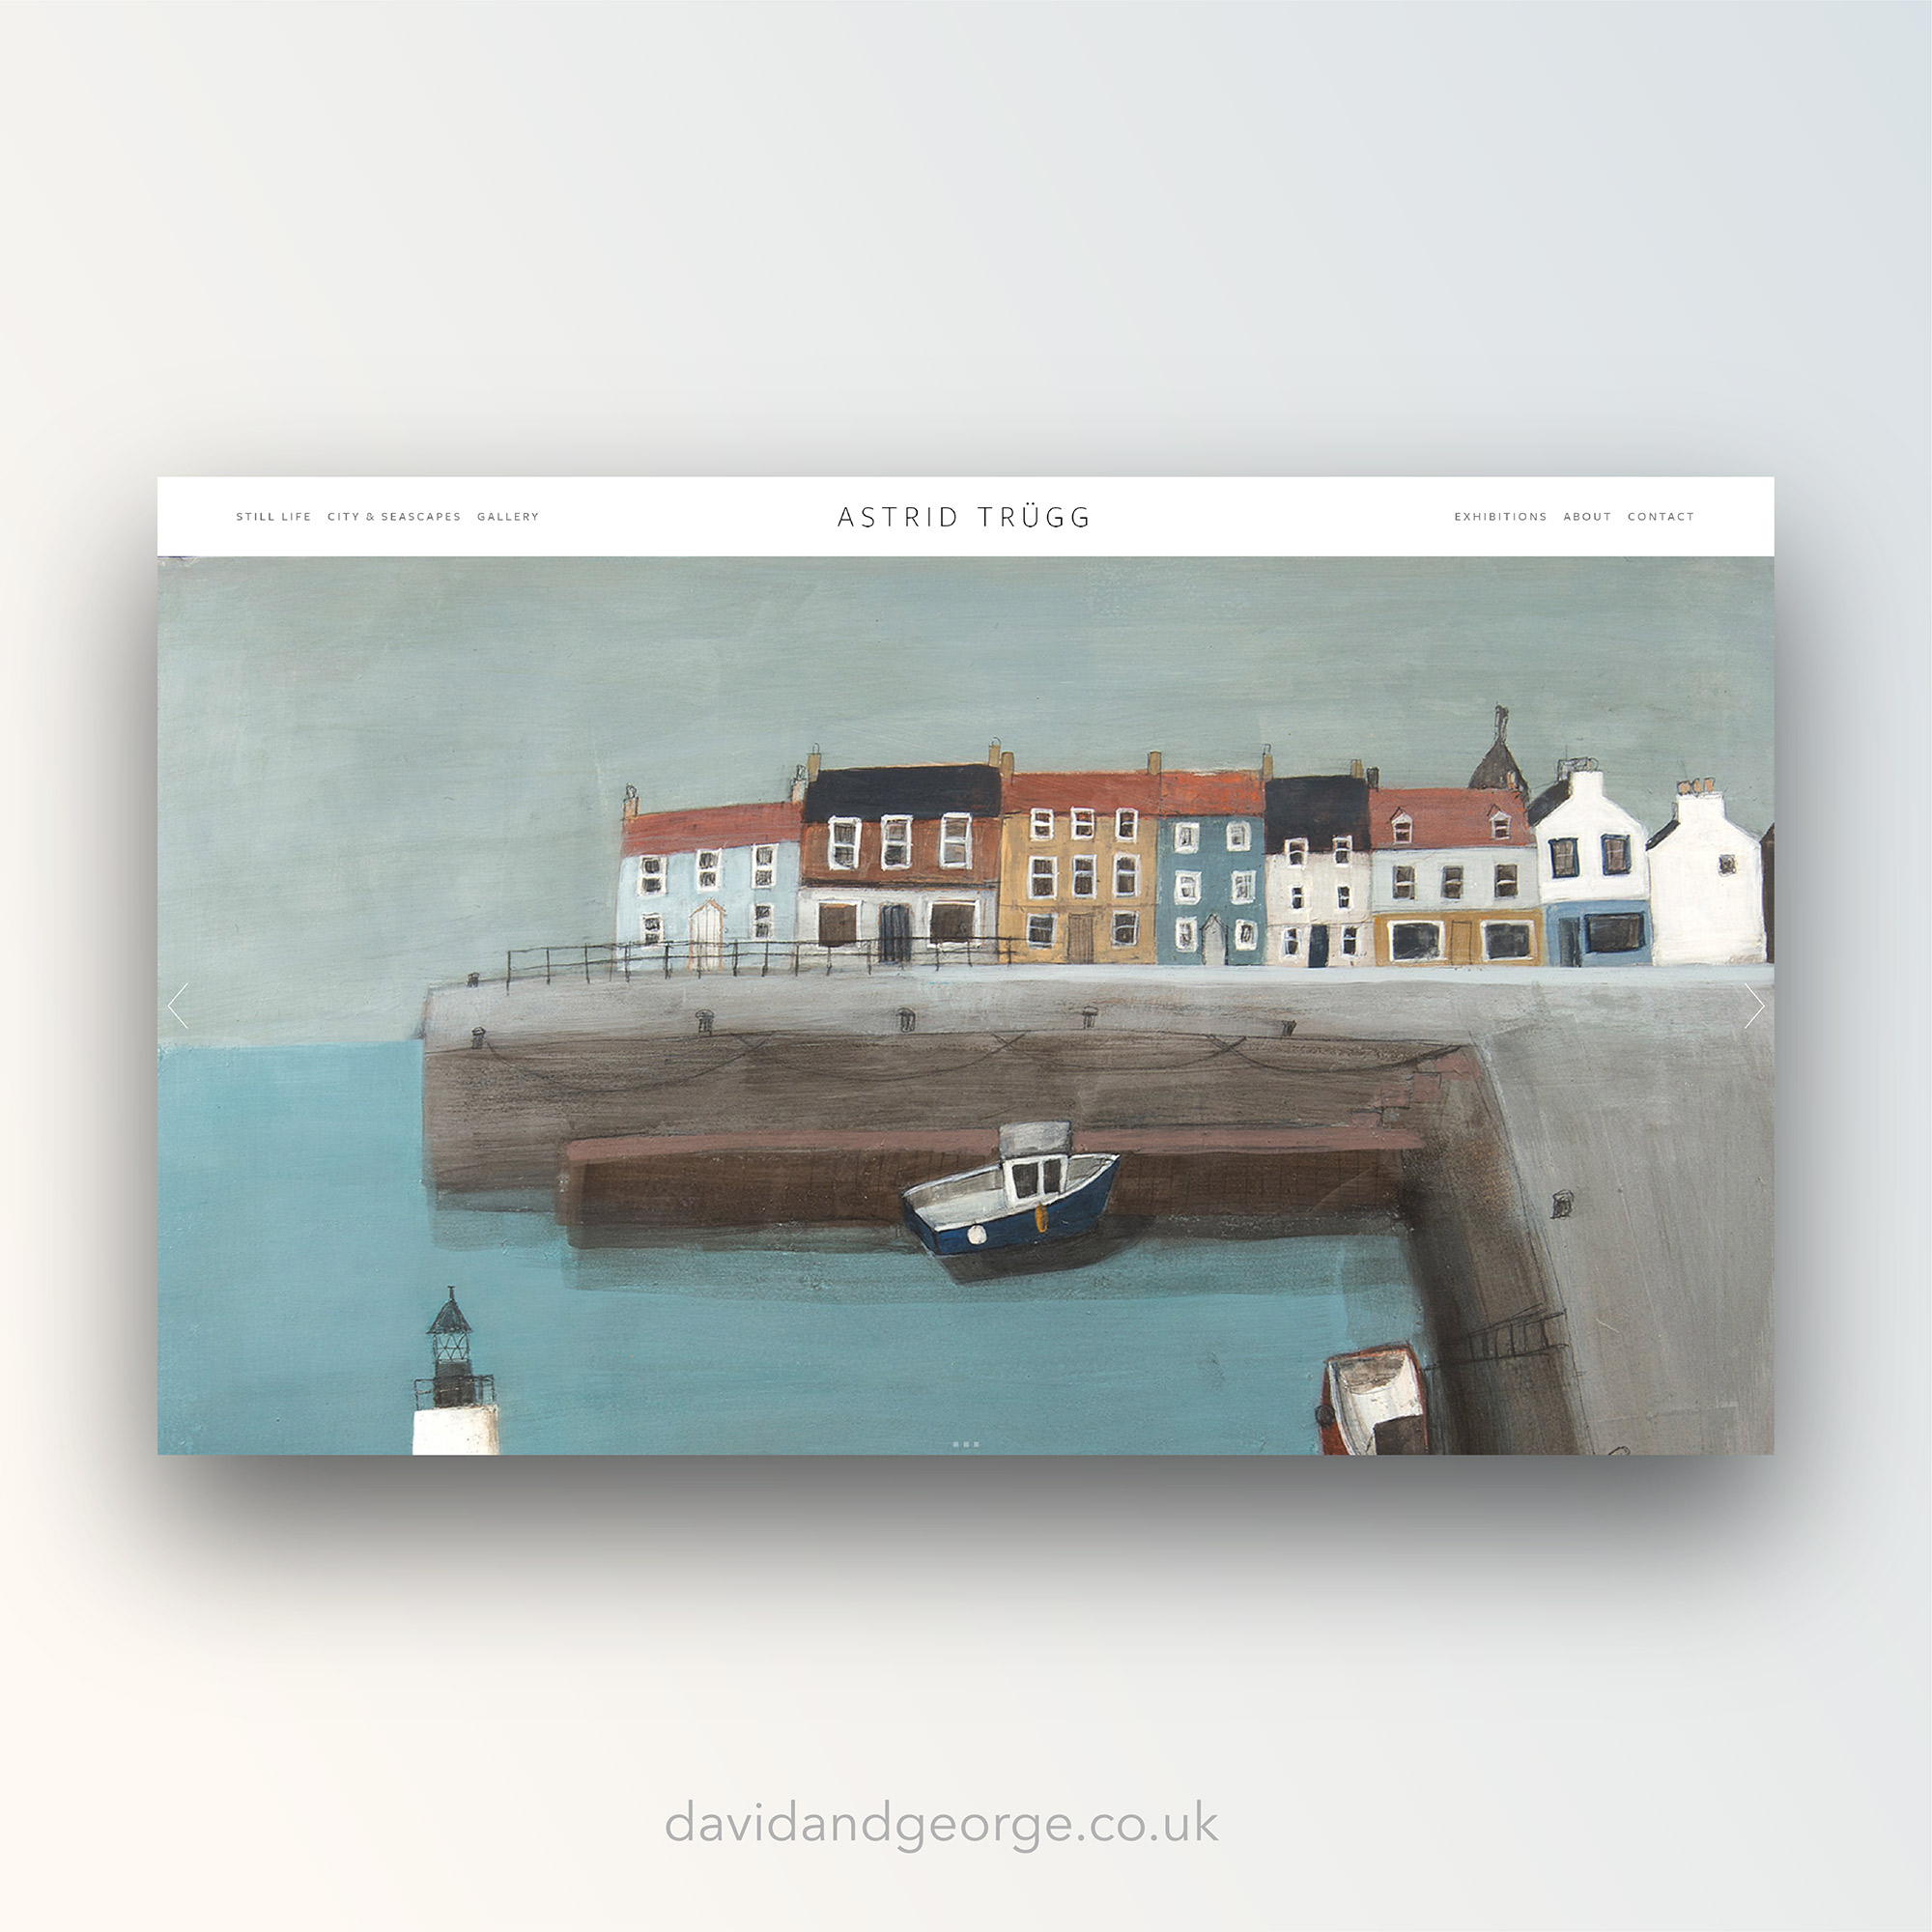 squarespace-website-design-london-edinburgh-uk-david-and-george-astrid-trugg-artist.jpg